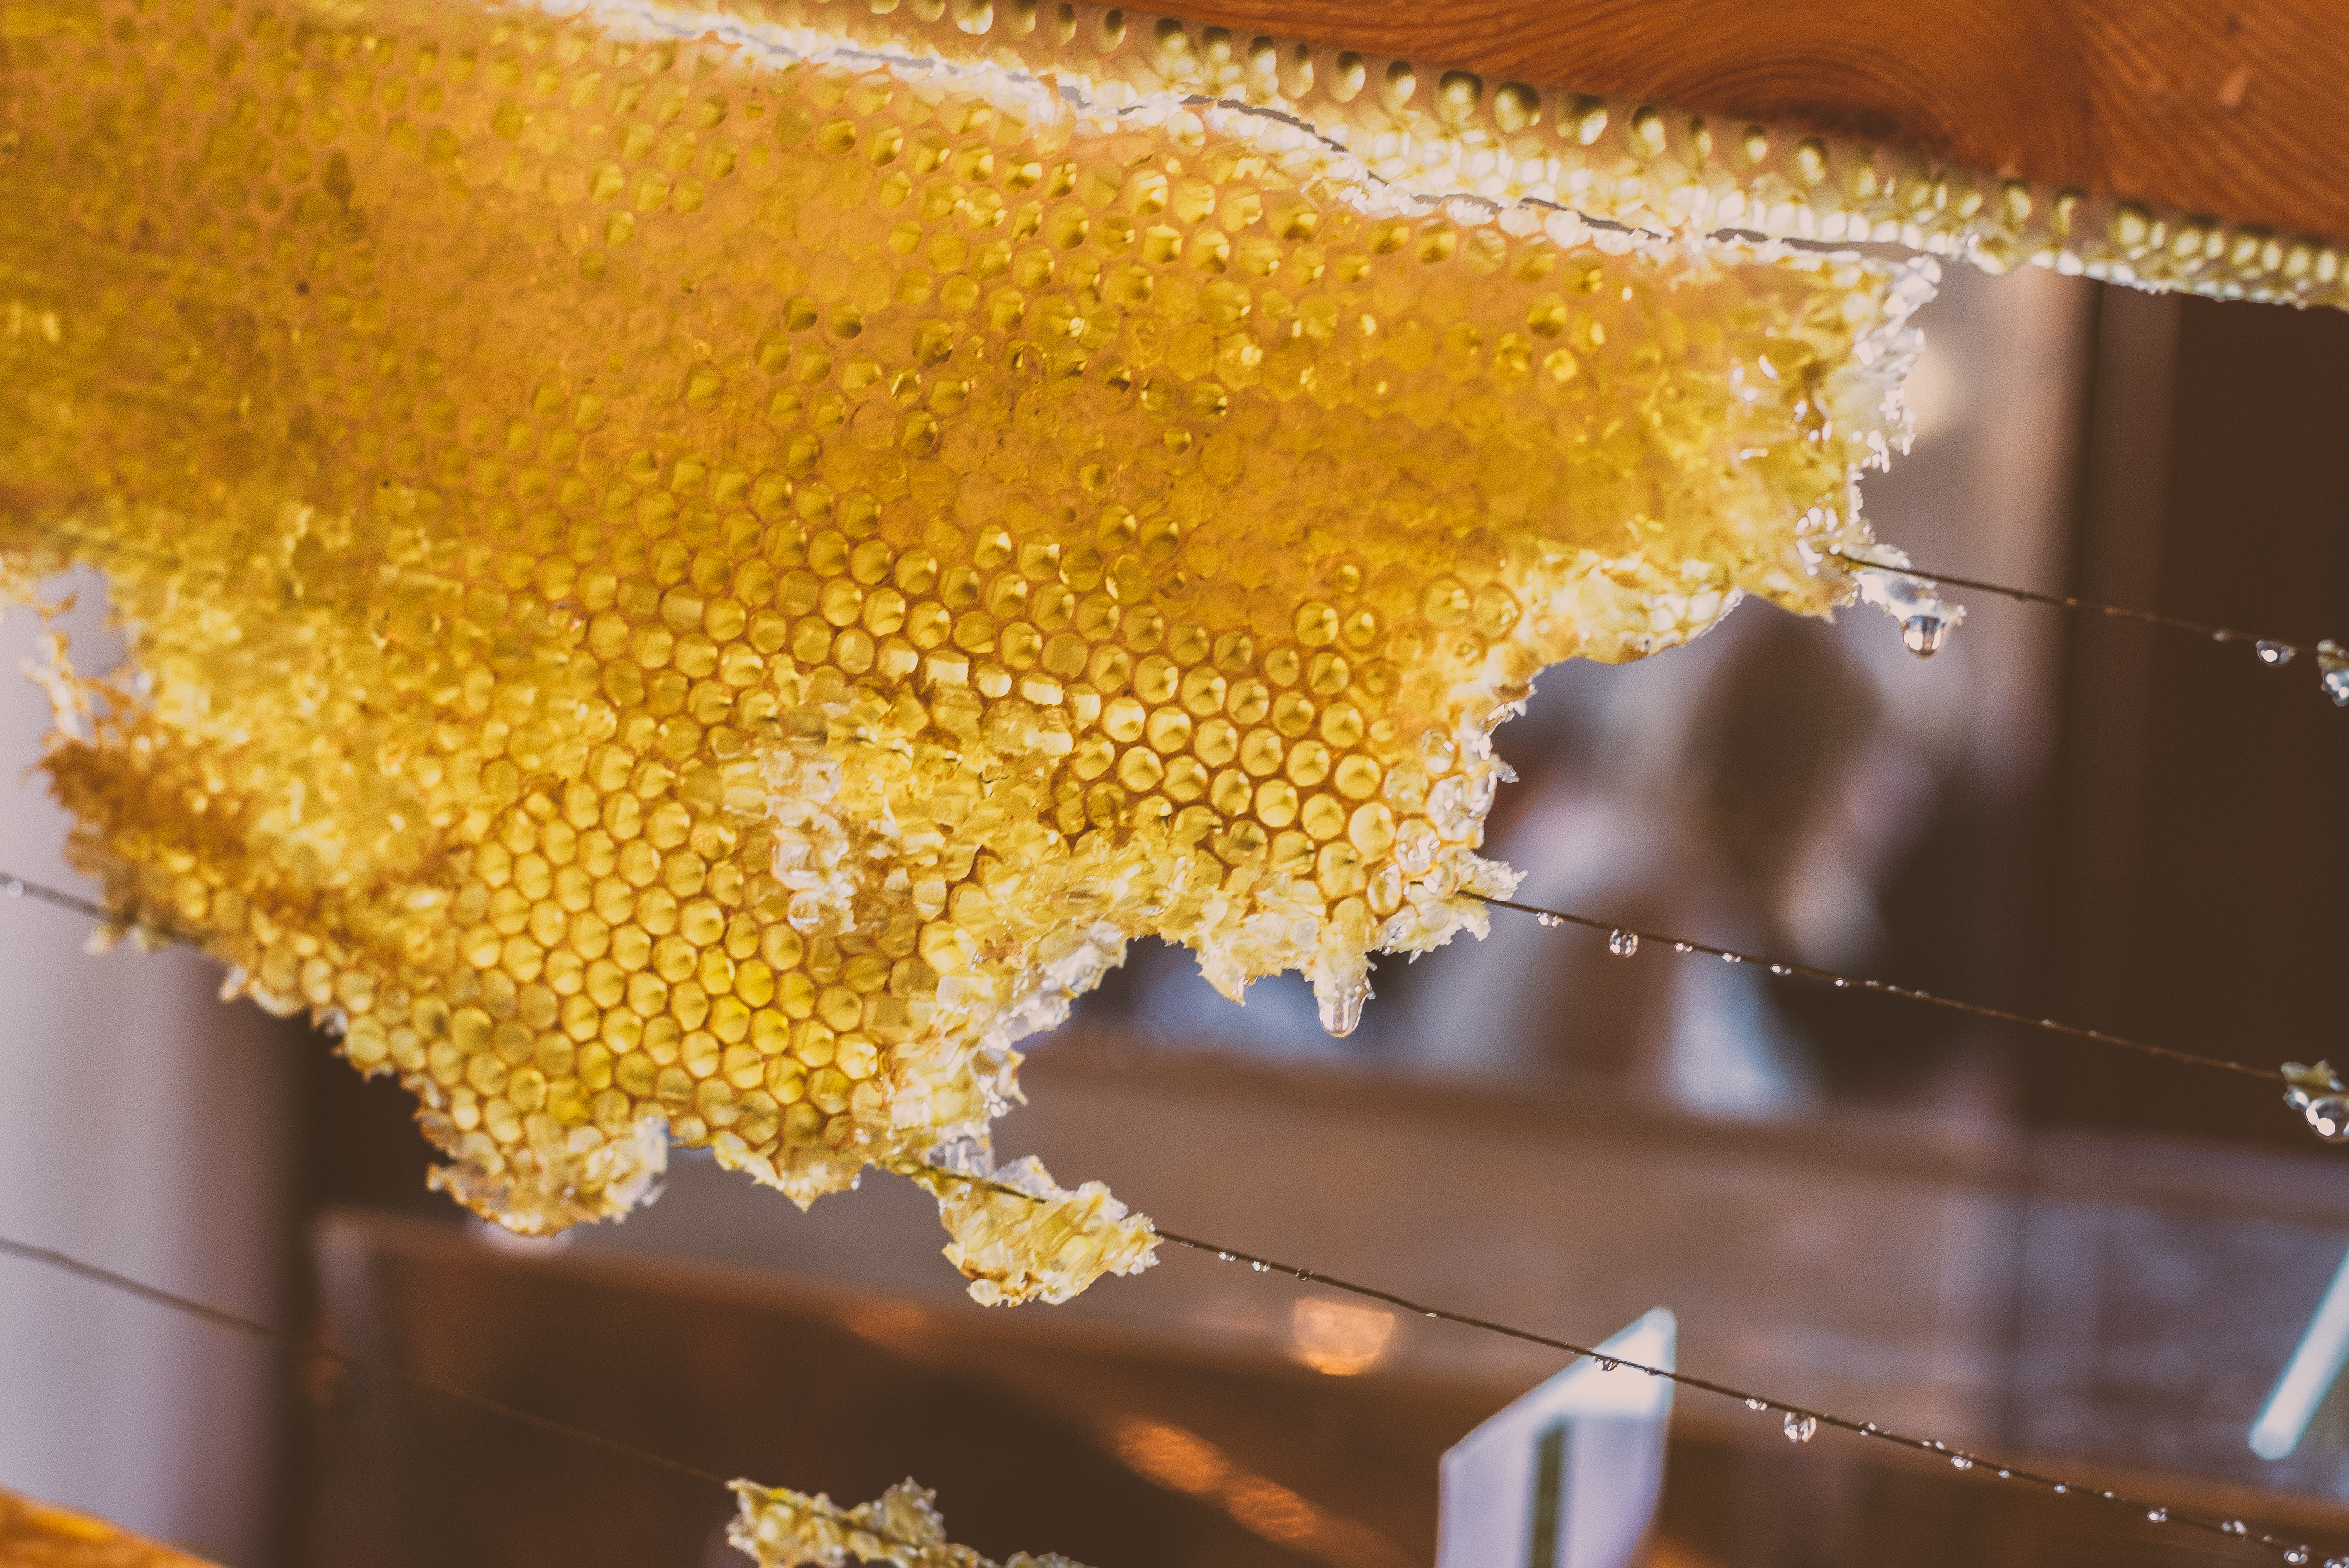 Bees and honeycomb, World Bee Day